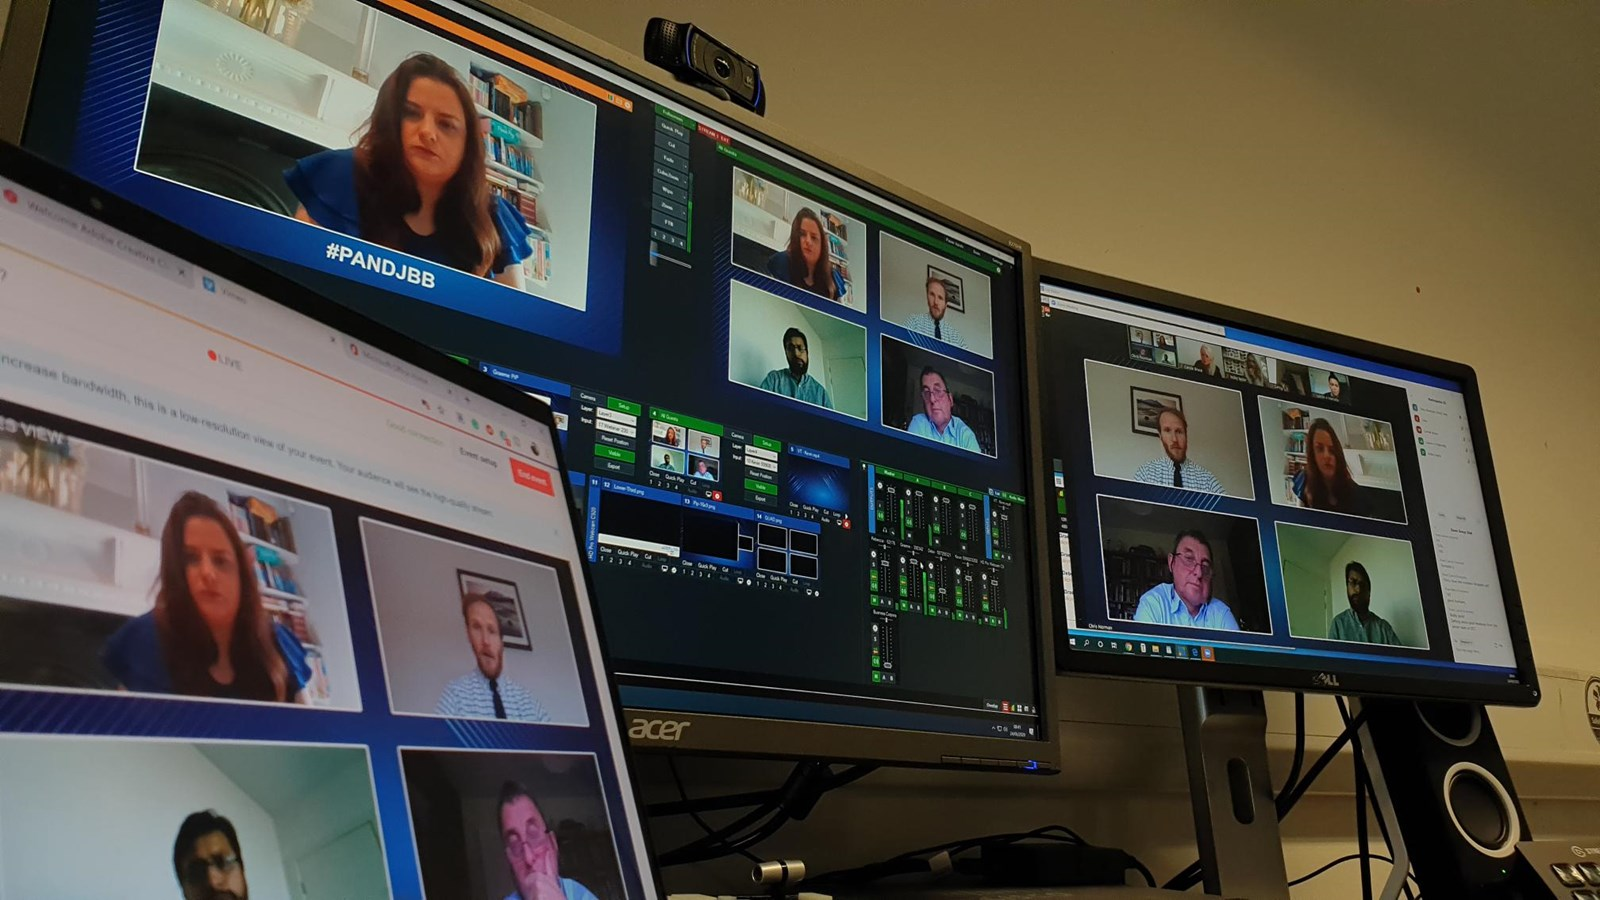 Three large computer screens displaying an online video meeting